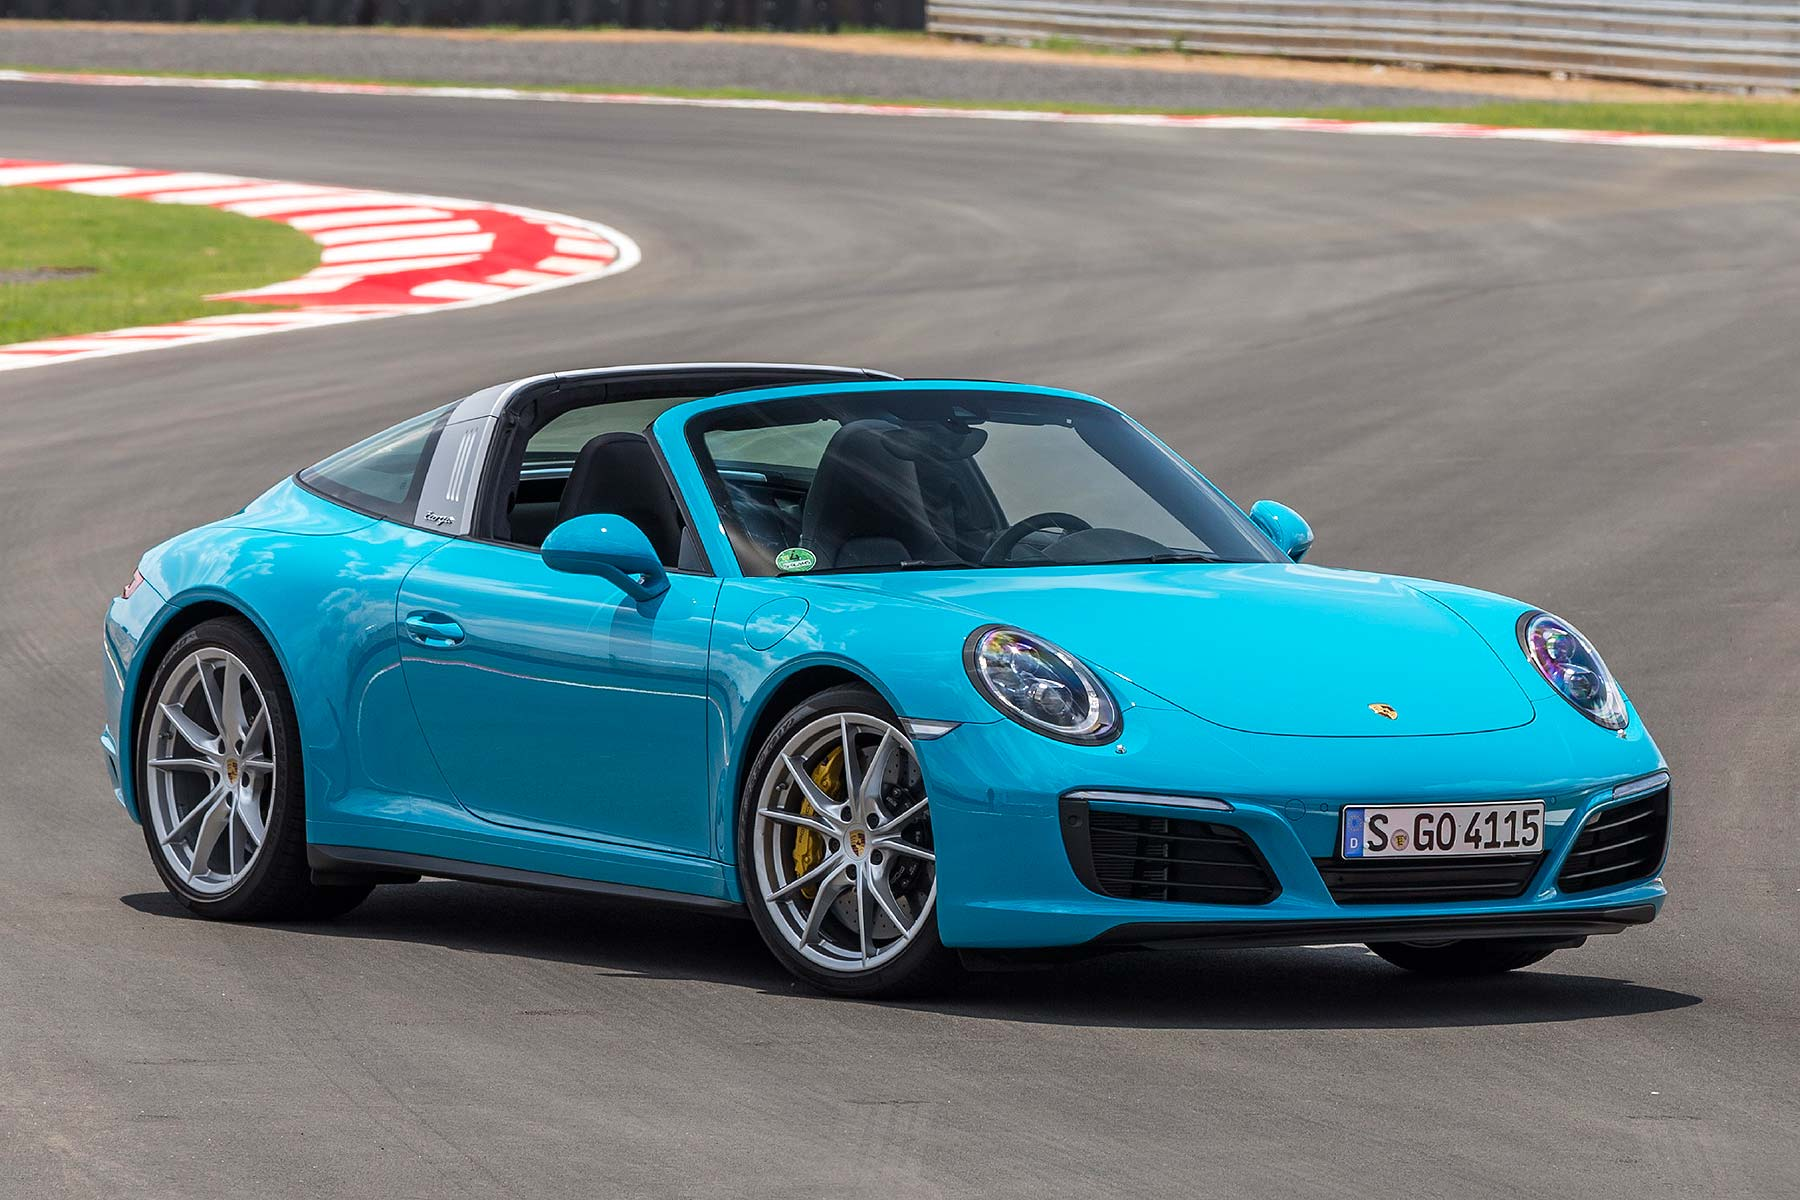 2016 Porsche 911 Targa 4S review: first drive | Motoring ...